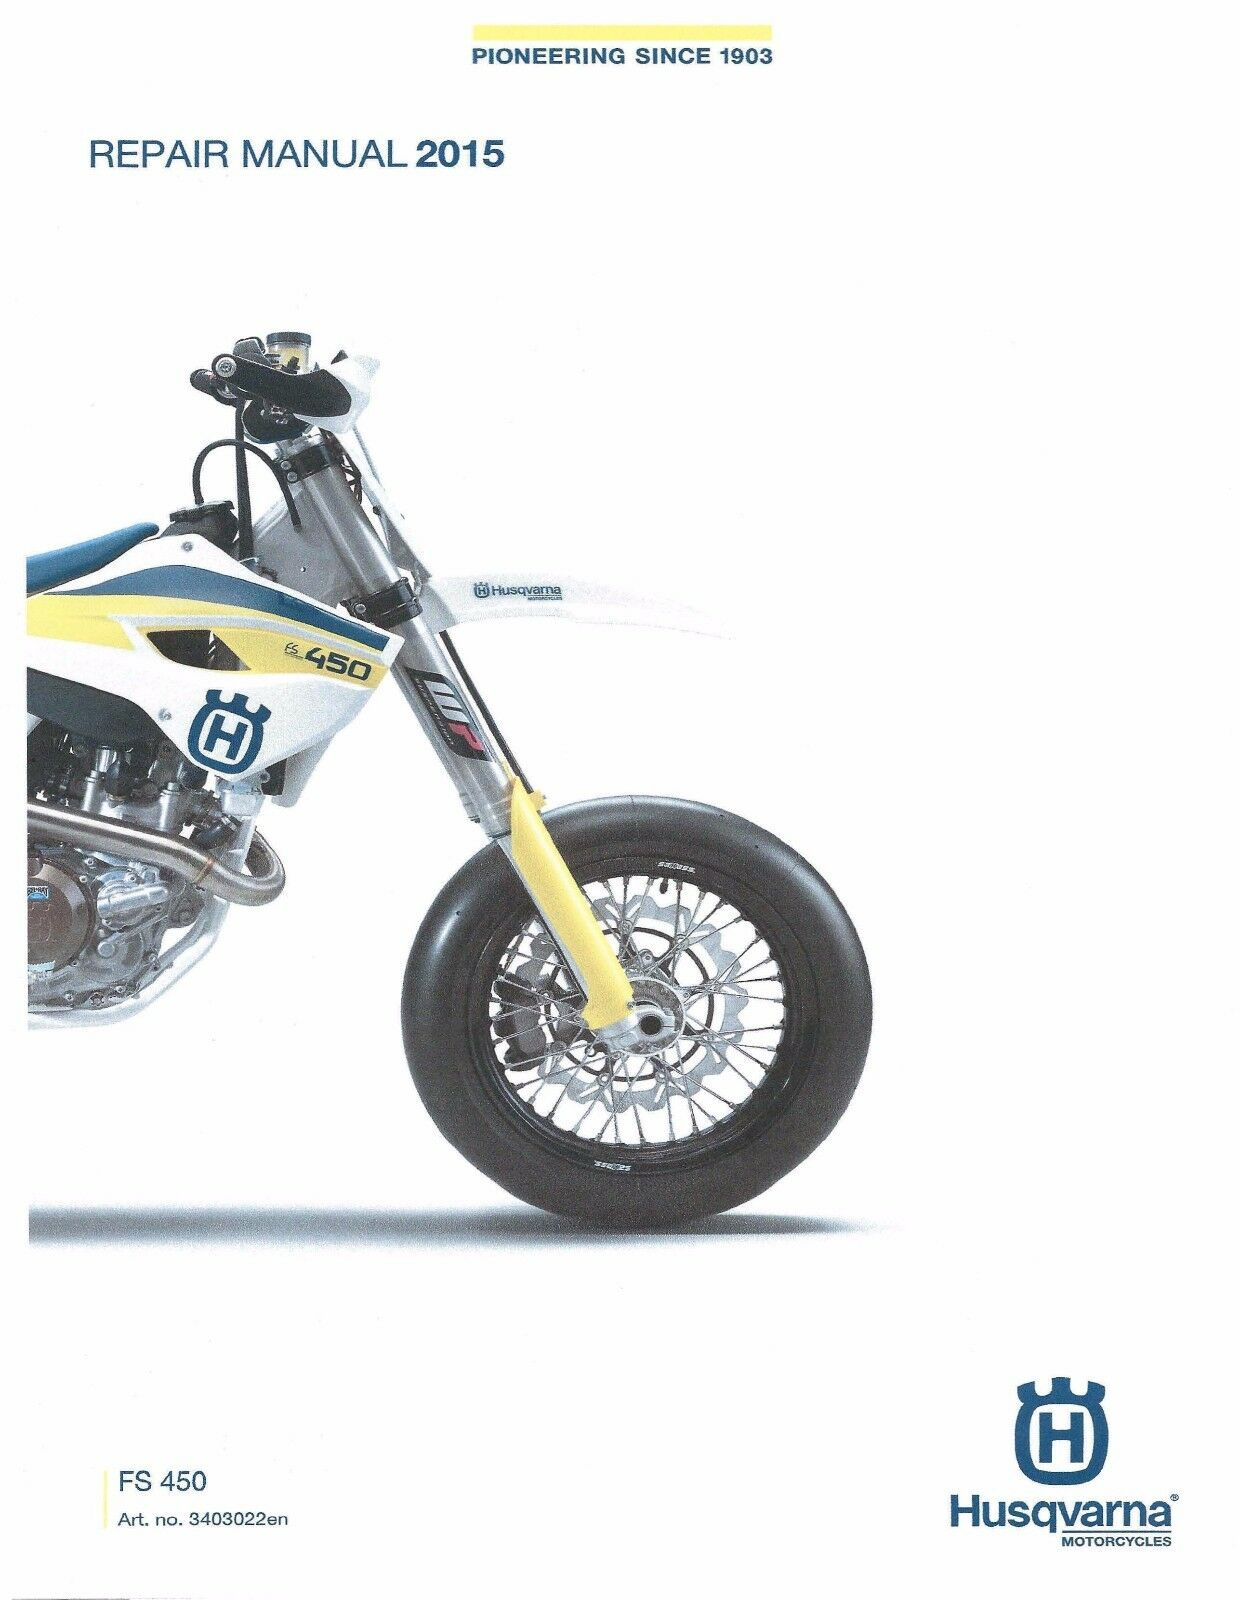 Husqvarna workshop service manual 2015 FS 450 1 of 6FREE Shipping ...